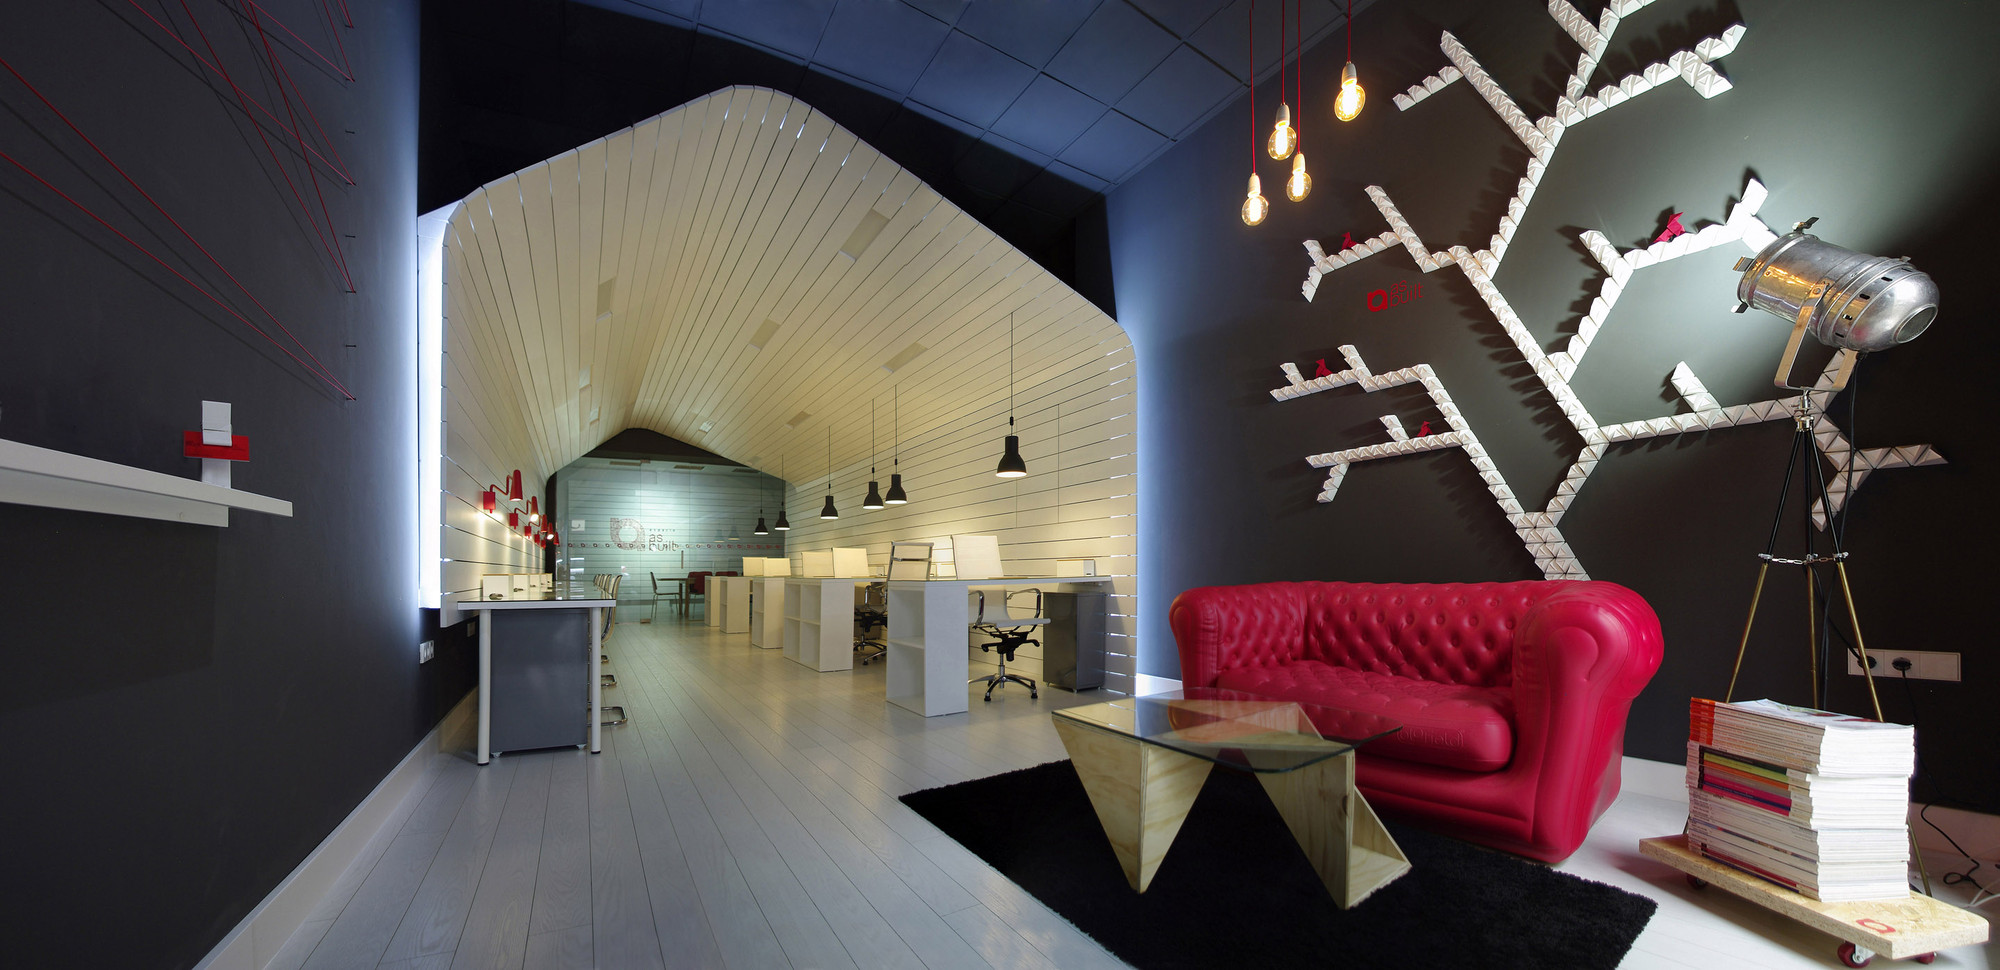 office for design and architecture. The Office For Architecture Studio And Coworking Space Designed By As \u2013 Built In Spain, Is An Innovative Design Form Function Using Contrasting